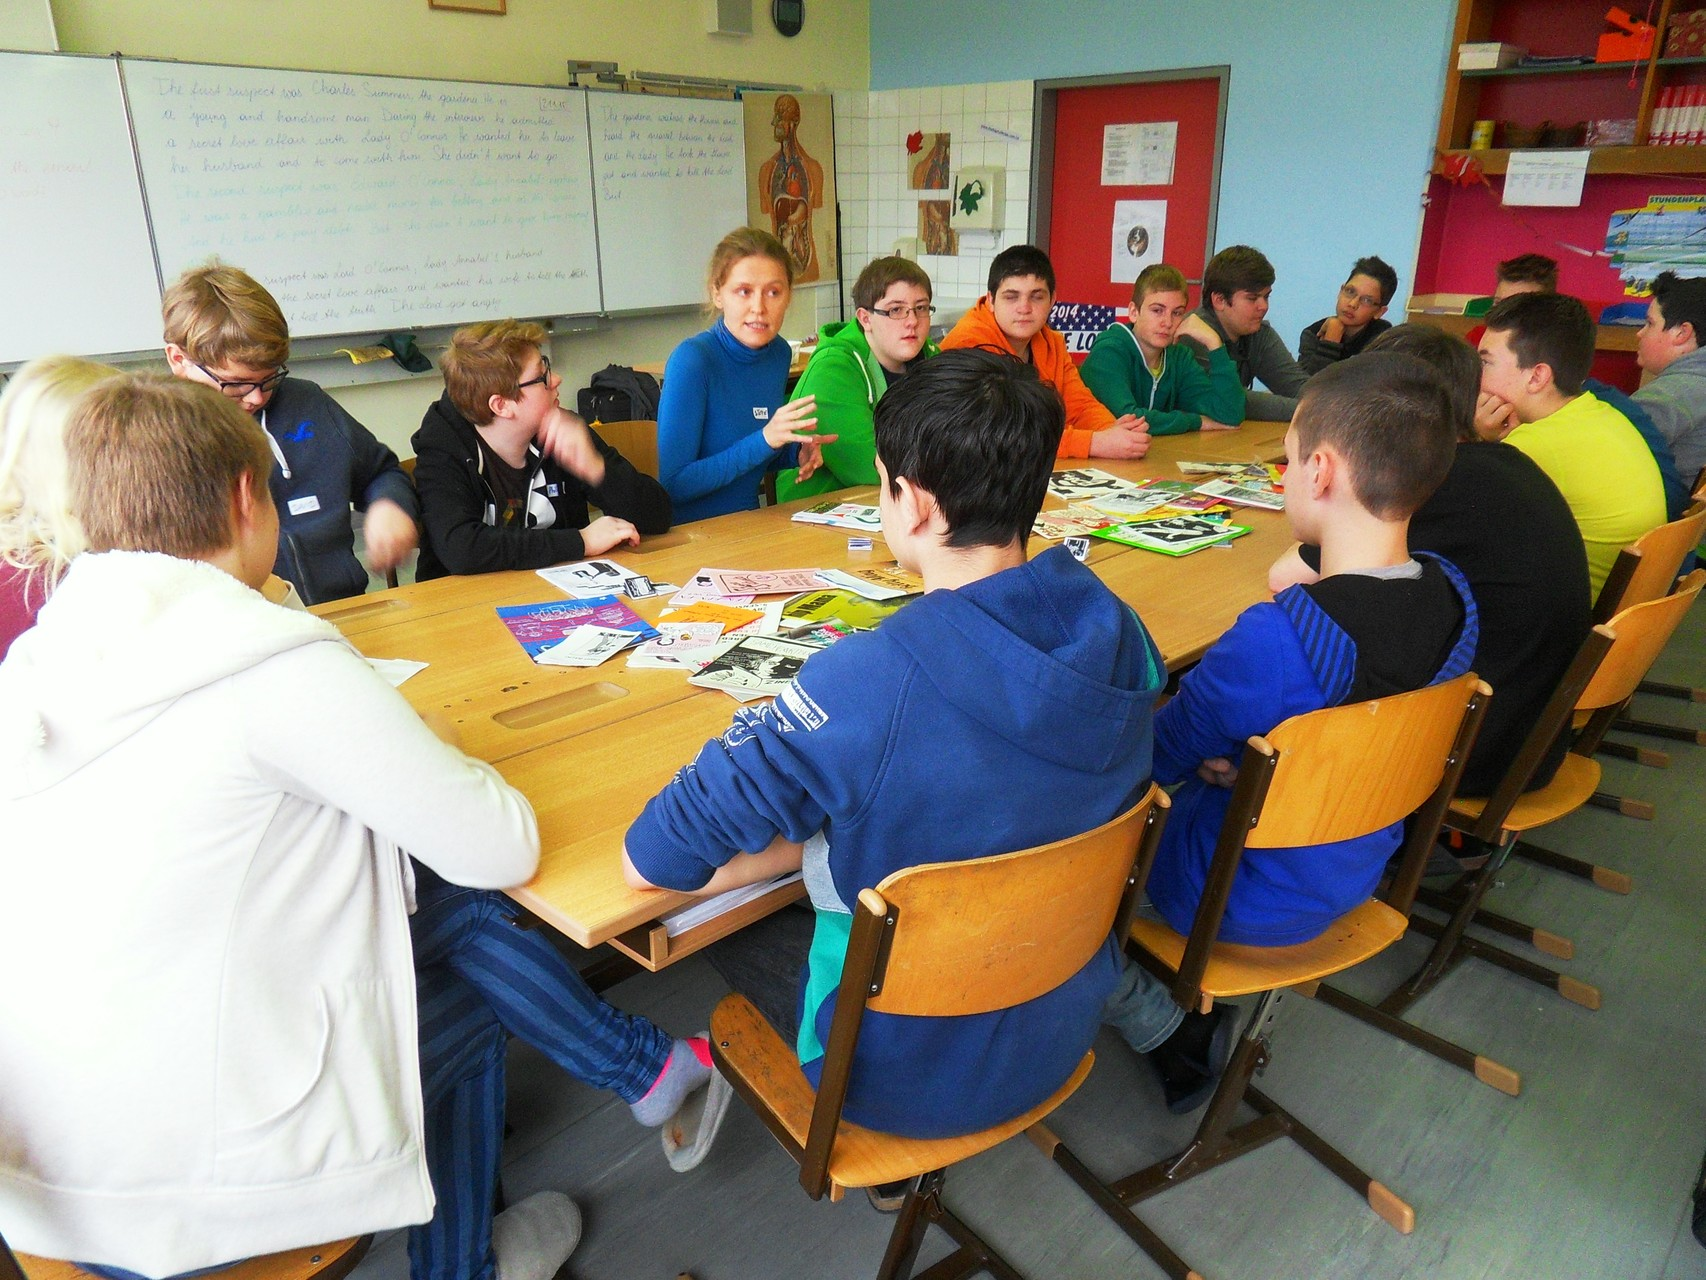 Zine-Workshop an der NMS Rust (Foto: NMS Rust)